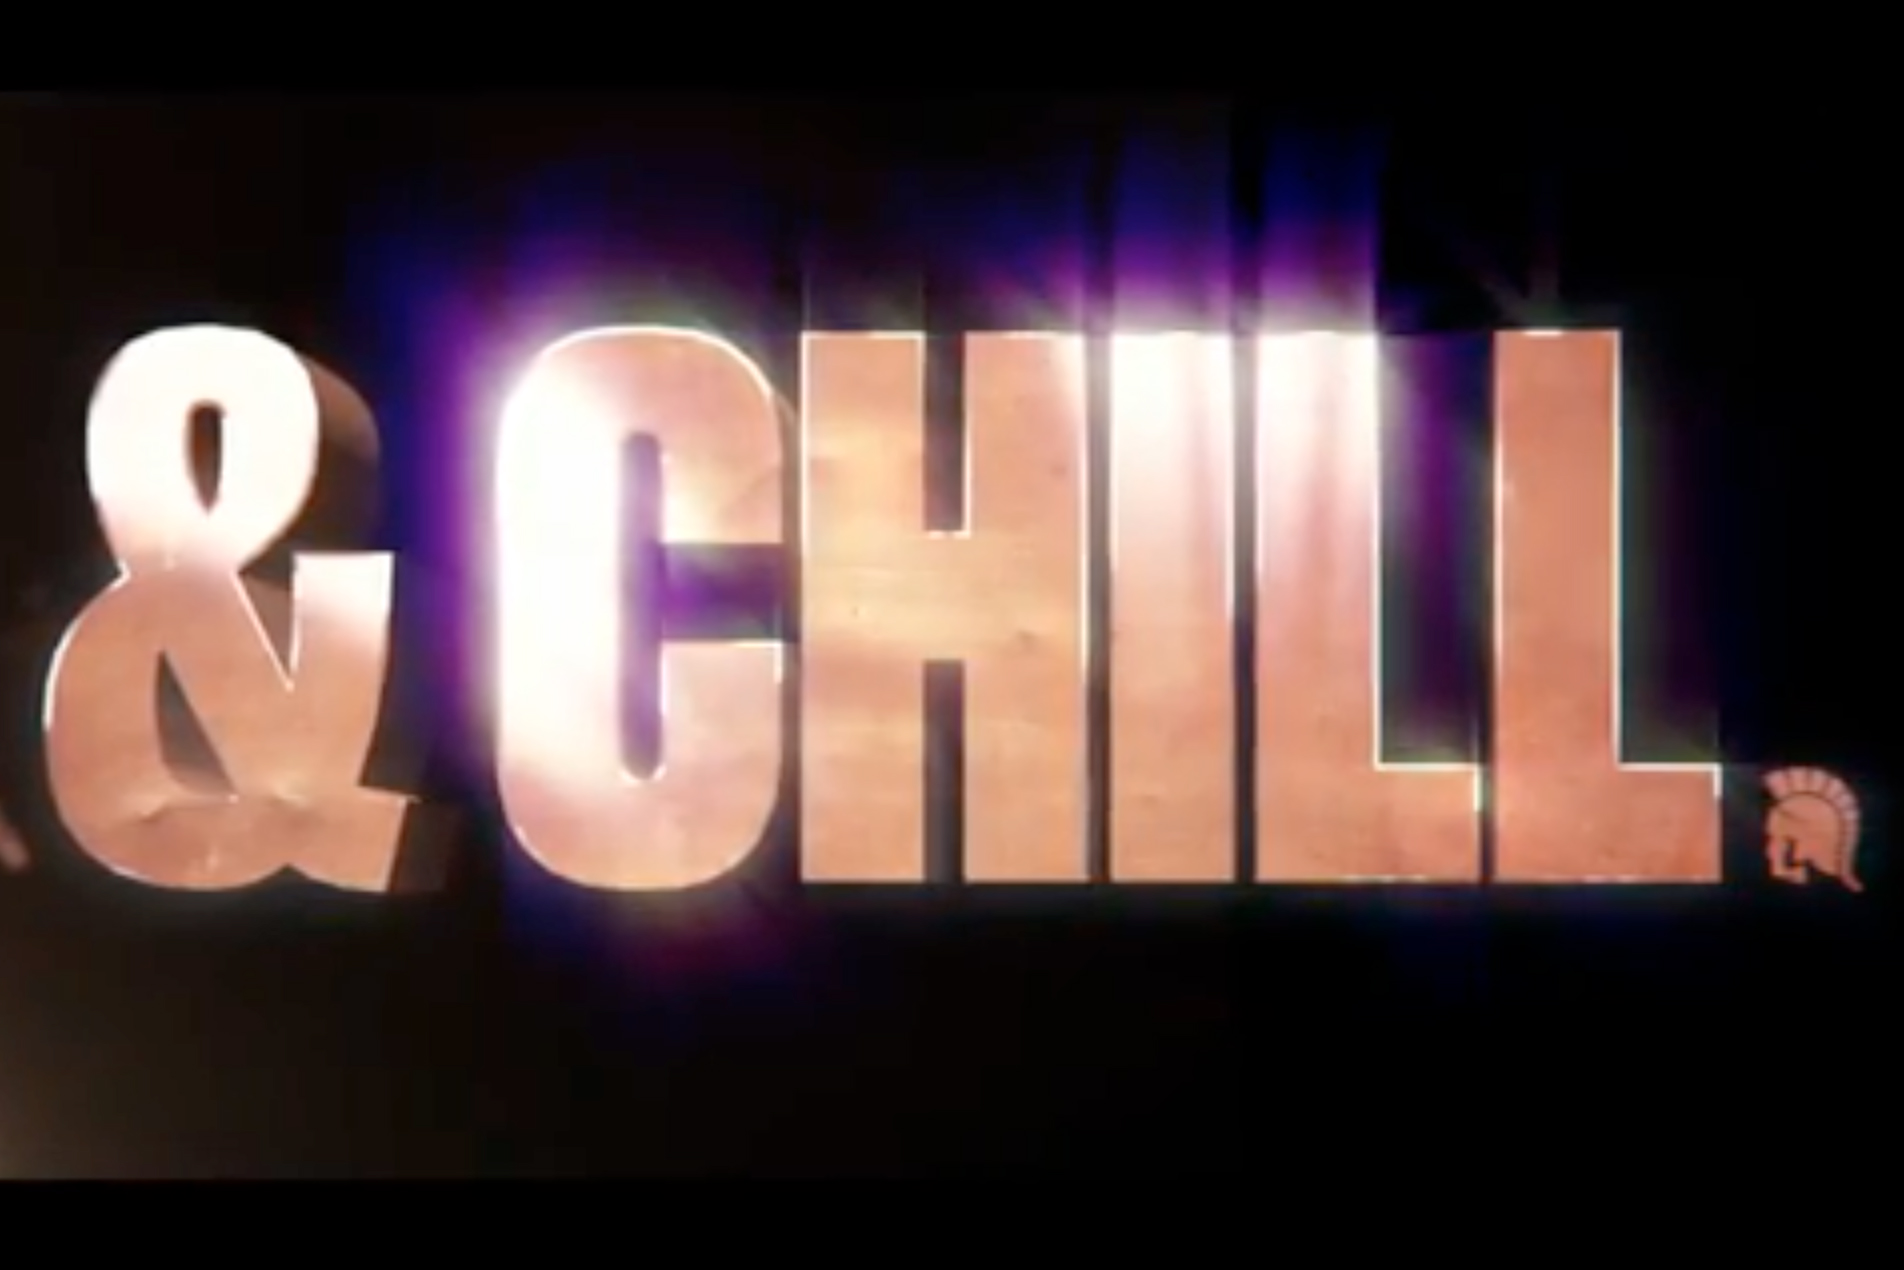 Agency Brief: Trojan debuts 48-minute nonsensical film for getting right to 'chilling'